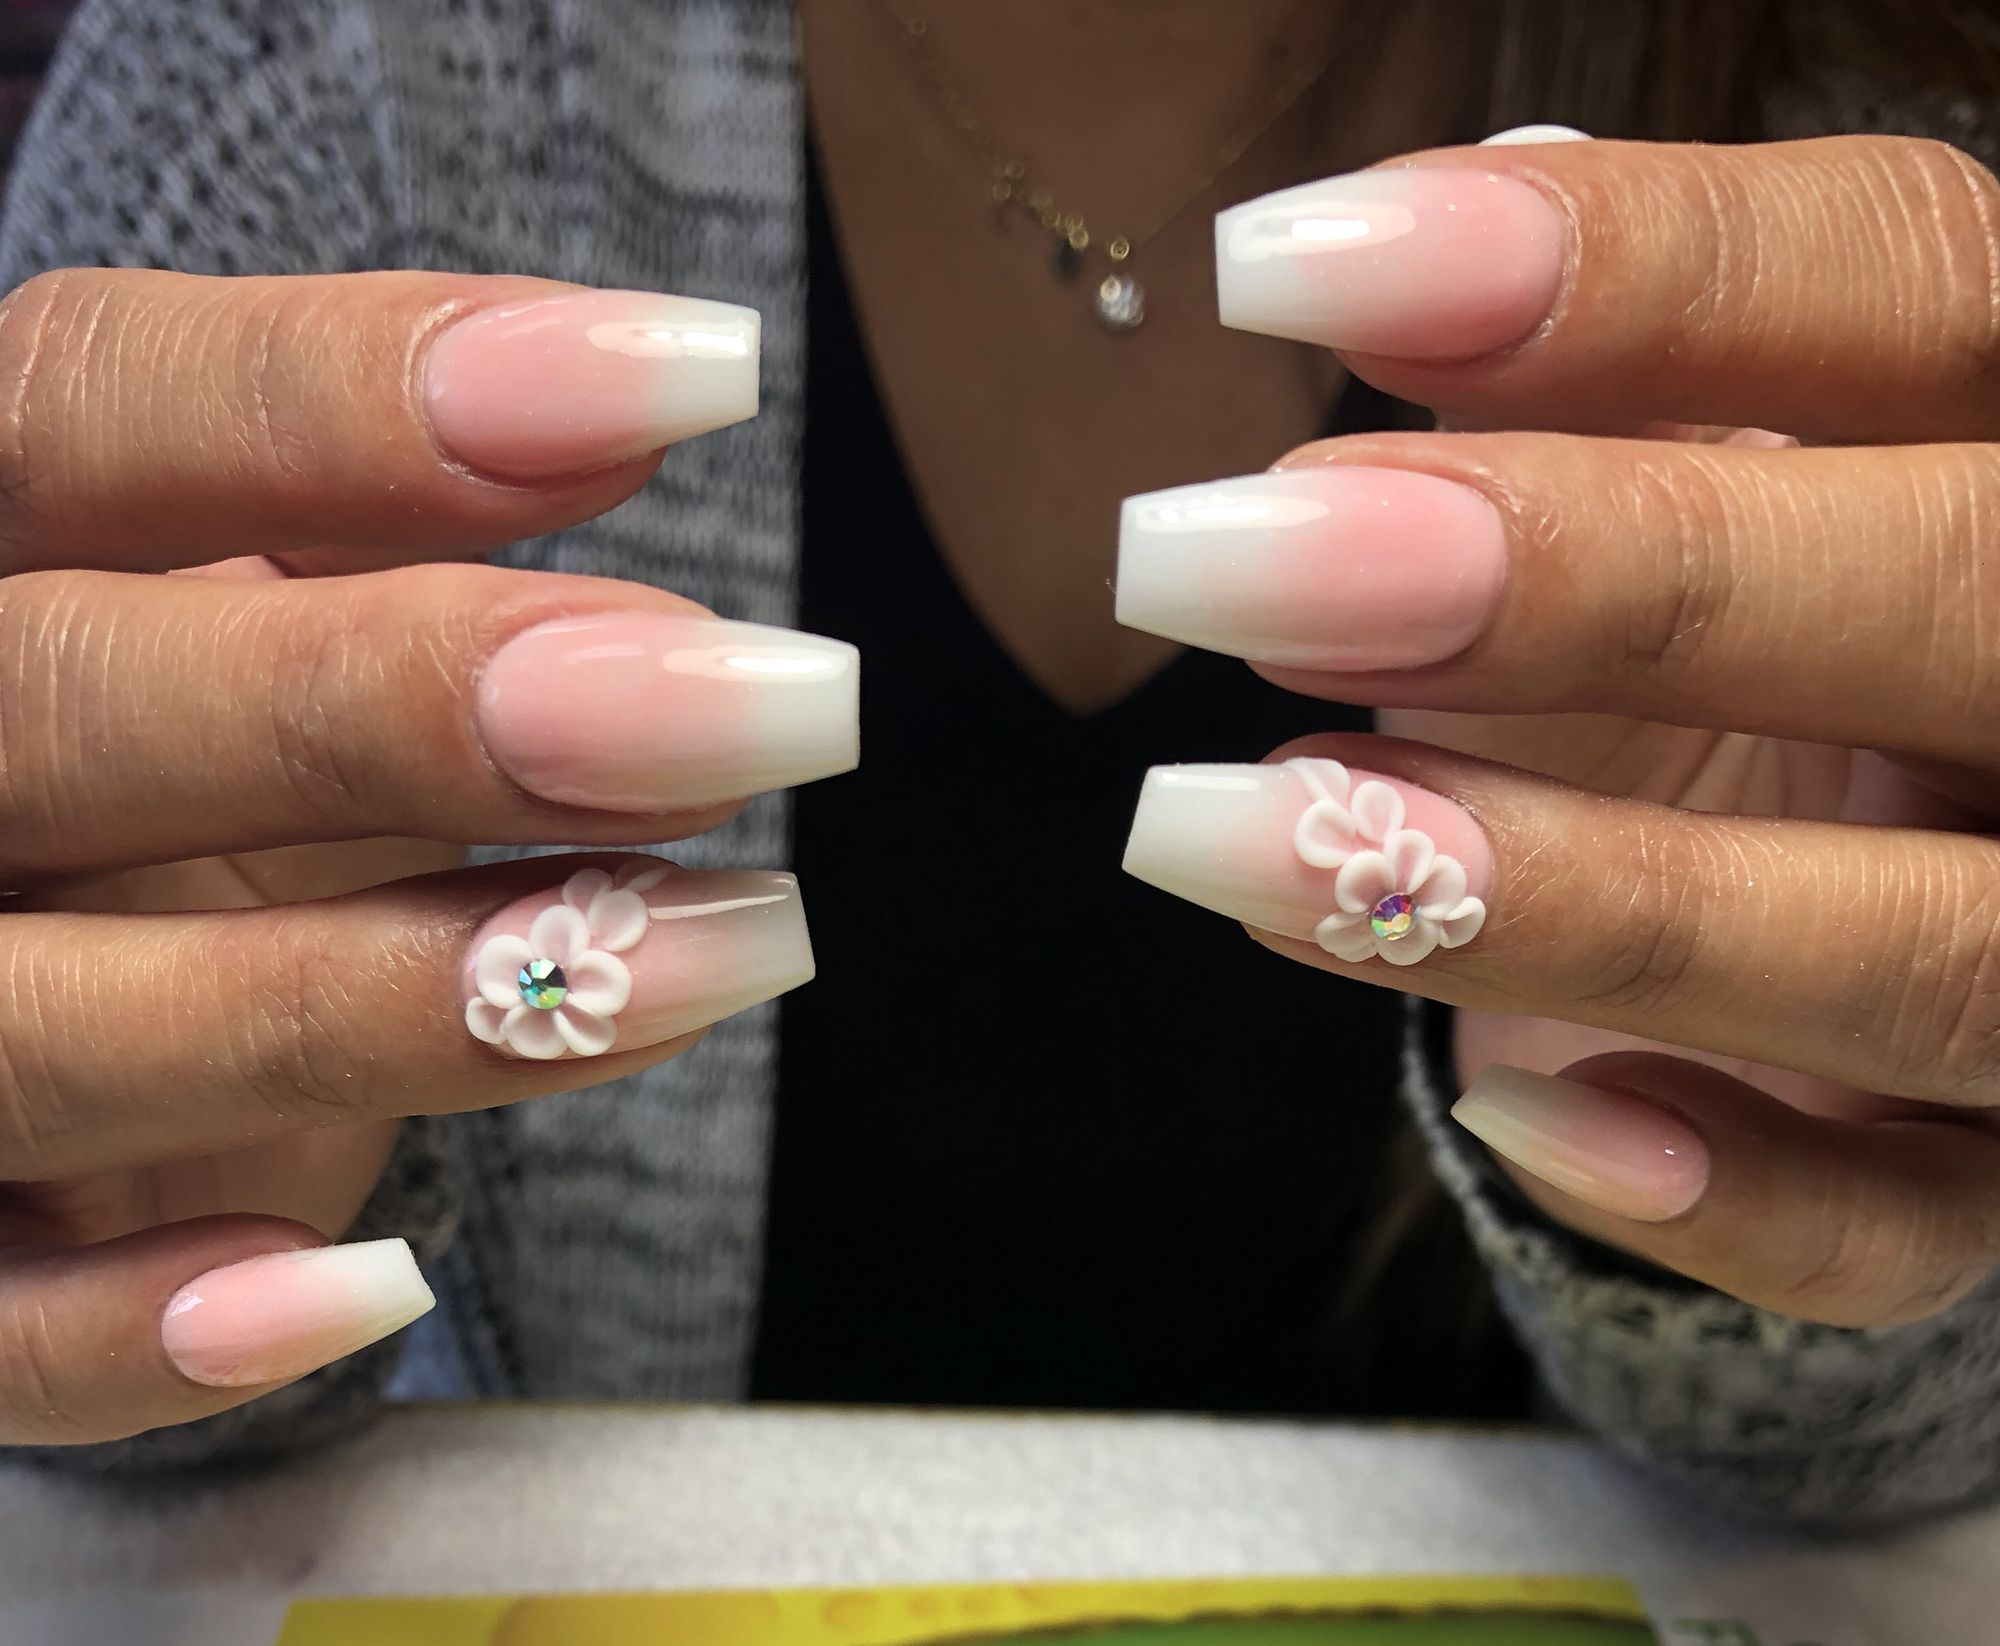 Pink and white ombré coffin nails with flower design 🌸 in